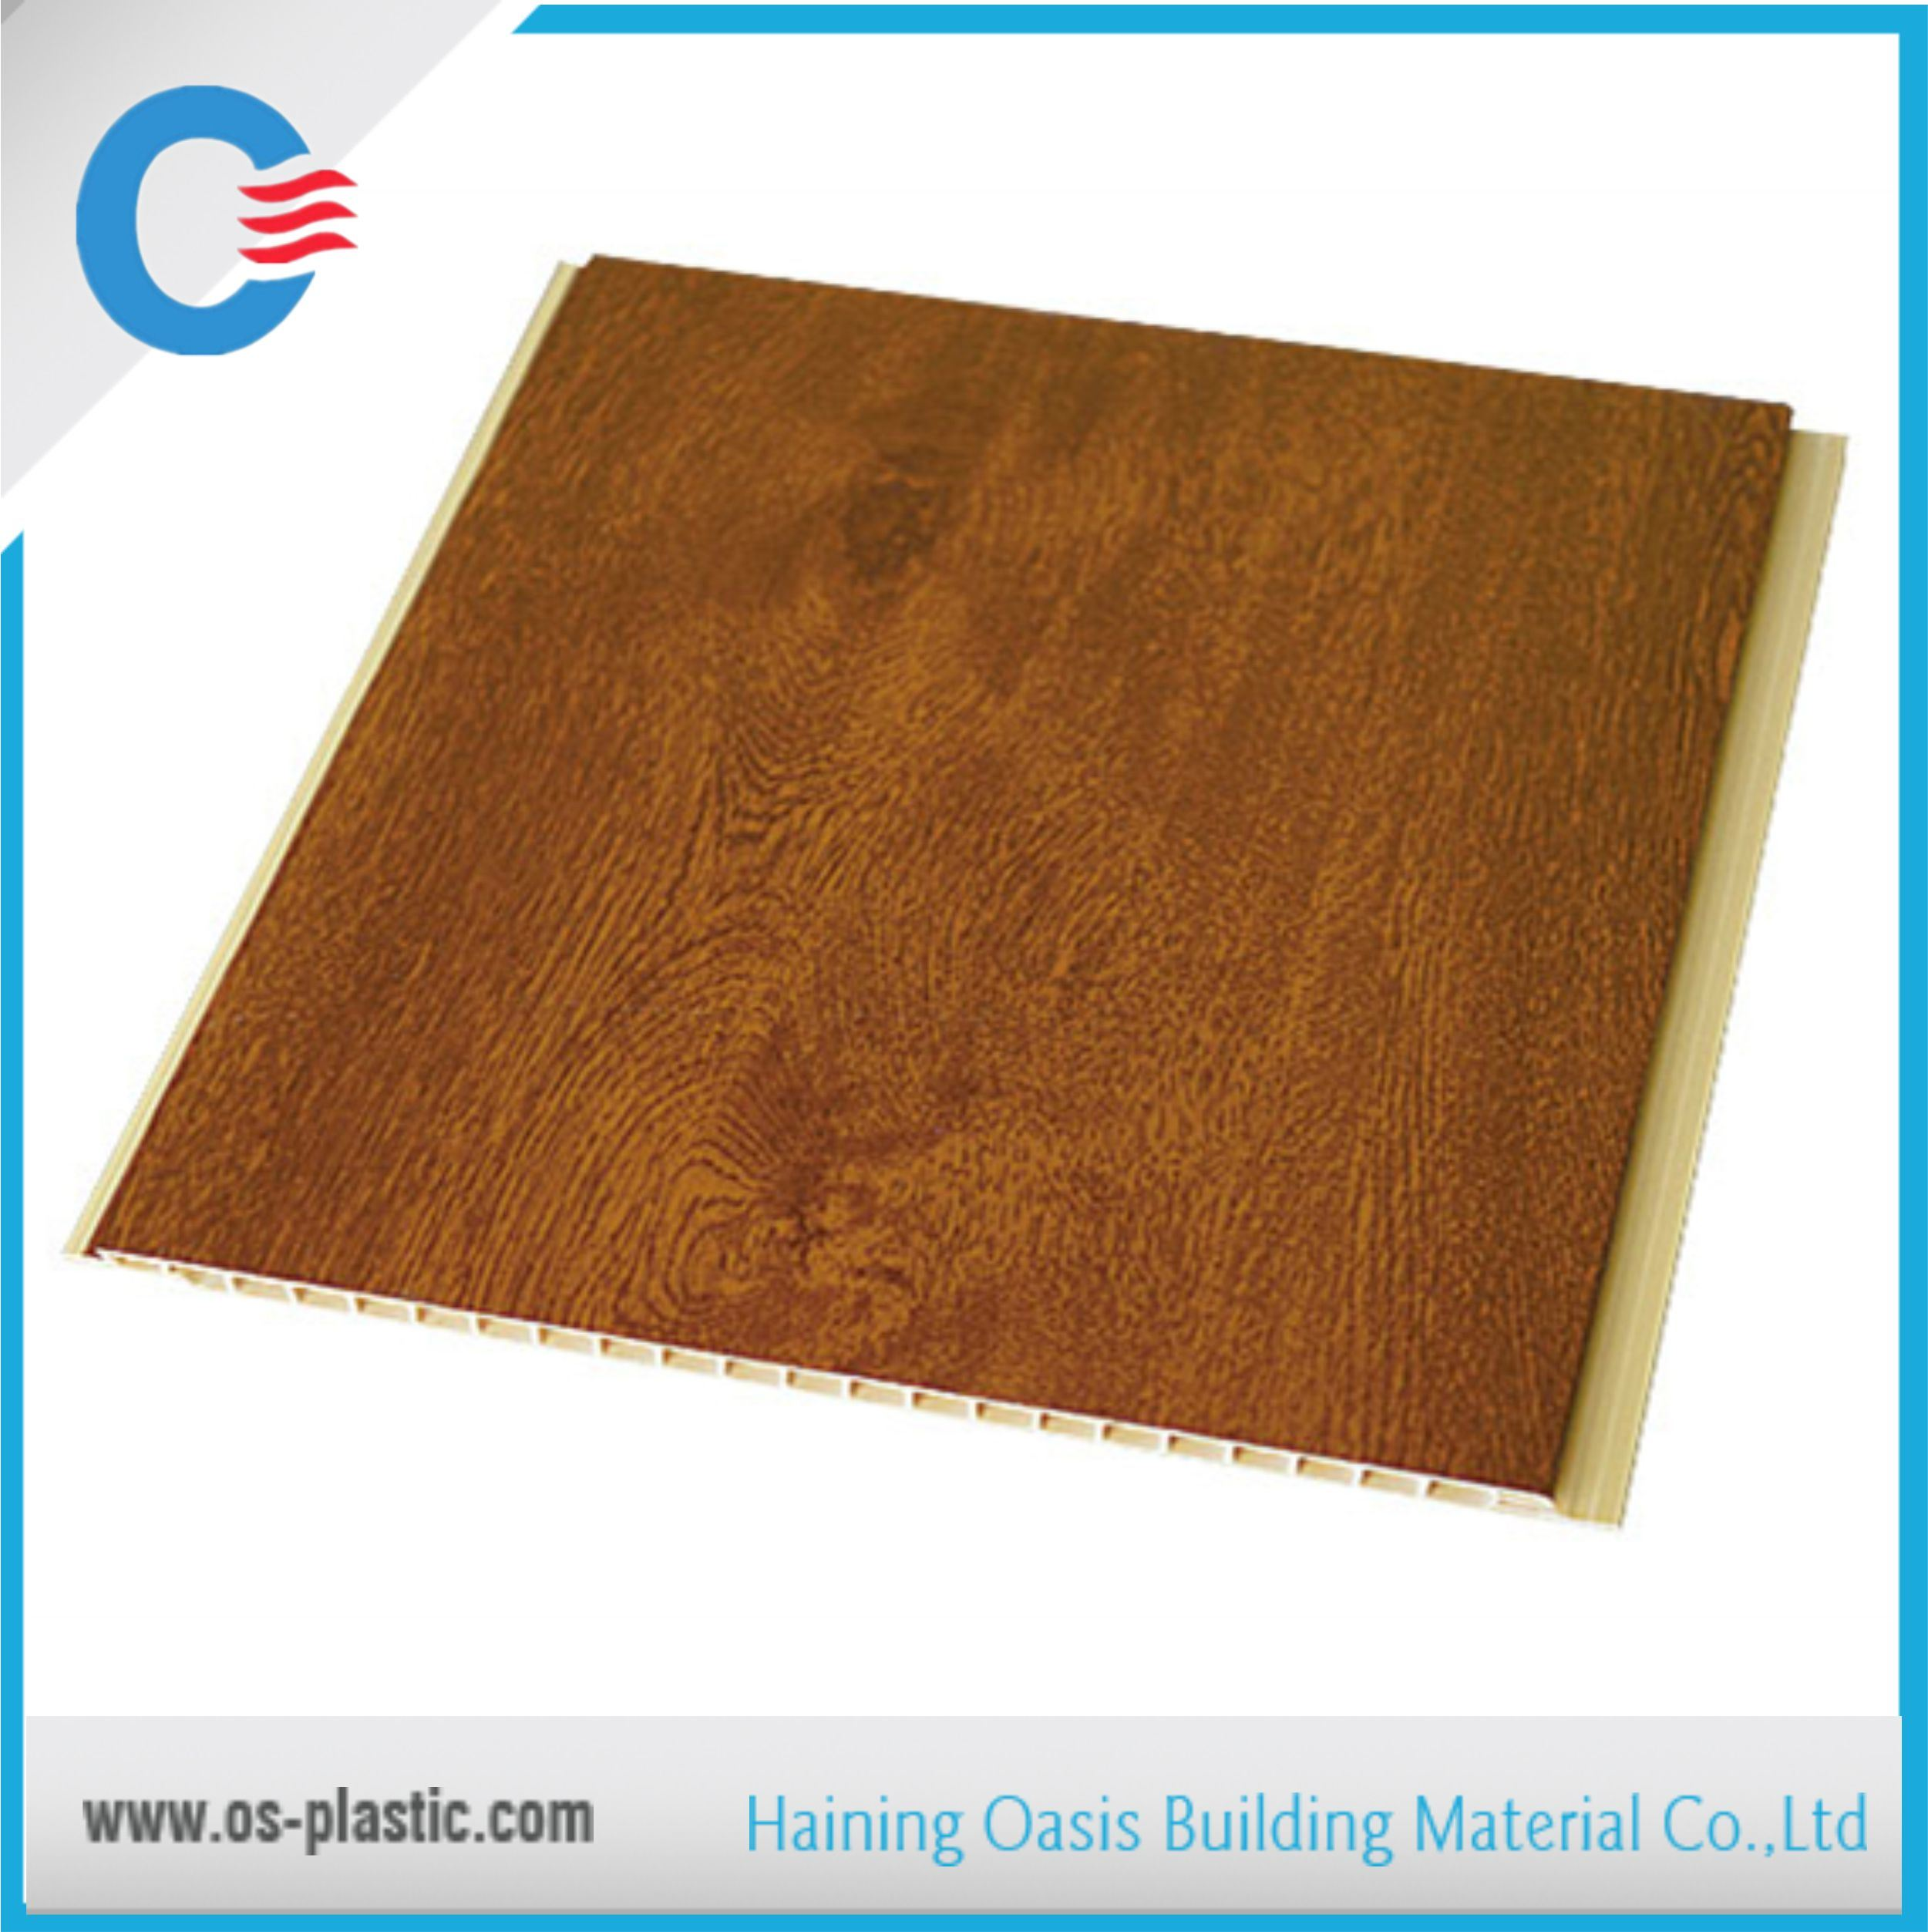 PVC Laminated Wall Panel PVC Ceiling Panels Interior Decorative Board